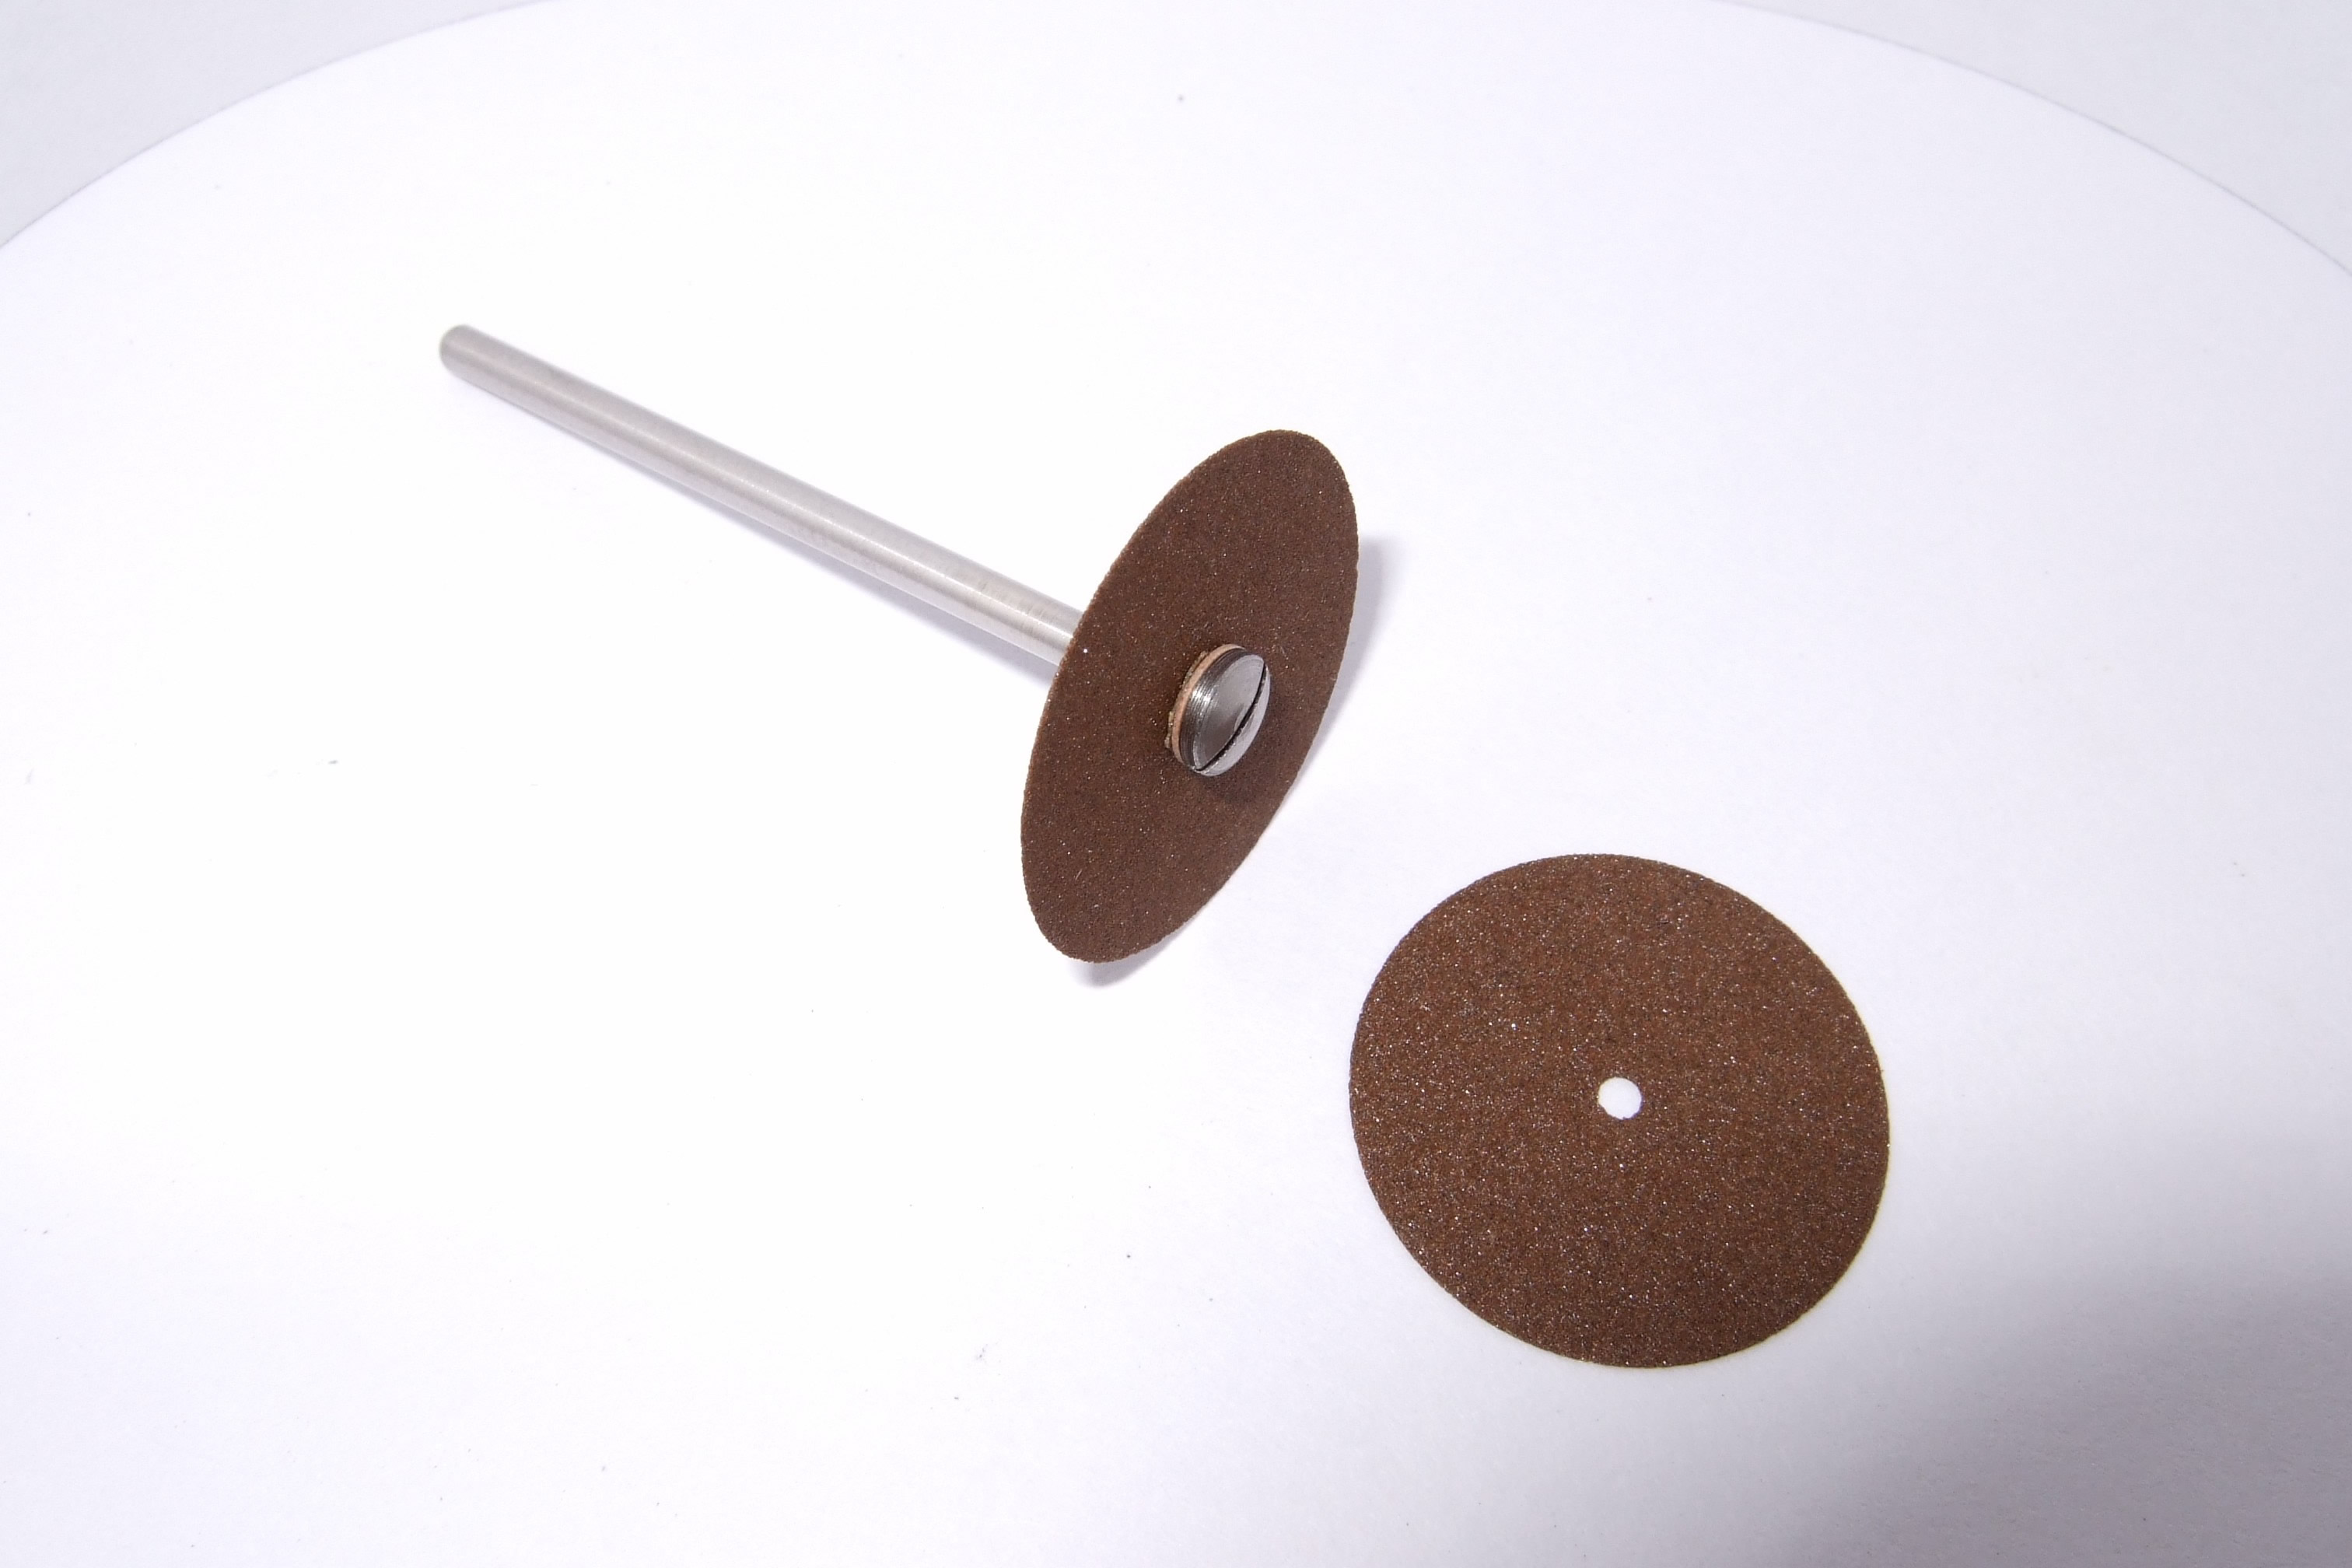 Carborundum grinding wheels